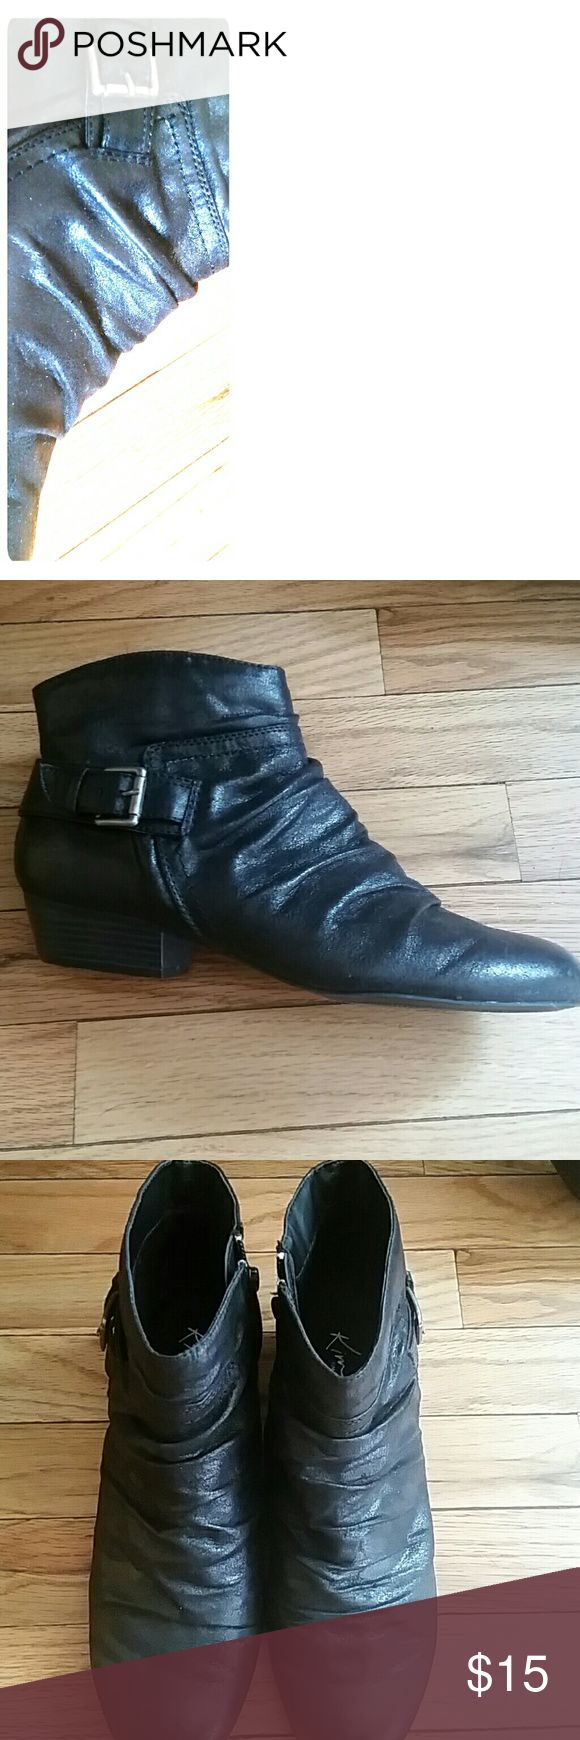 Ladies Black Ankle Boot Super cute black distressed ankle boot. In great shape. Also a available in brown. Very comfortable and true to size. Kim Rogers Shoes Ankle Boots & Booties